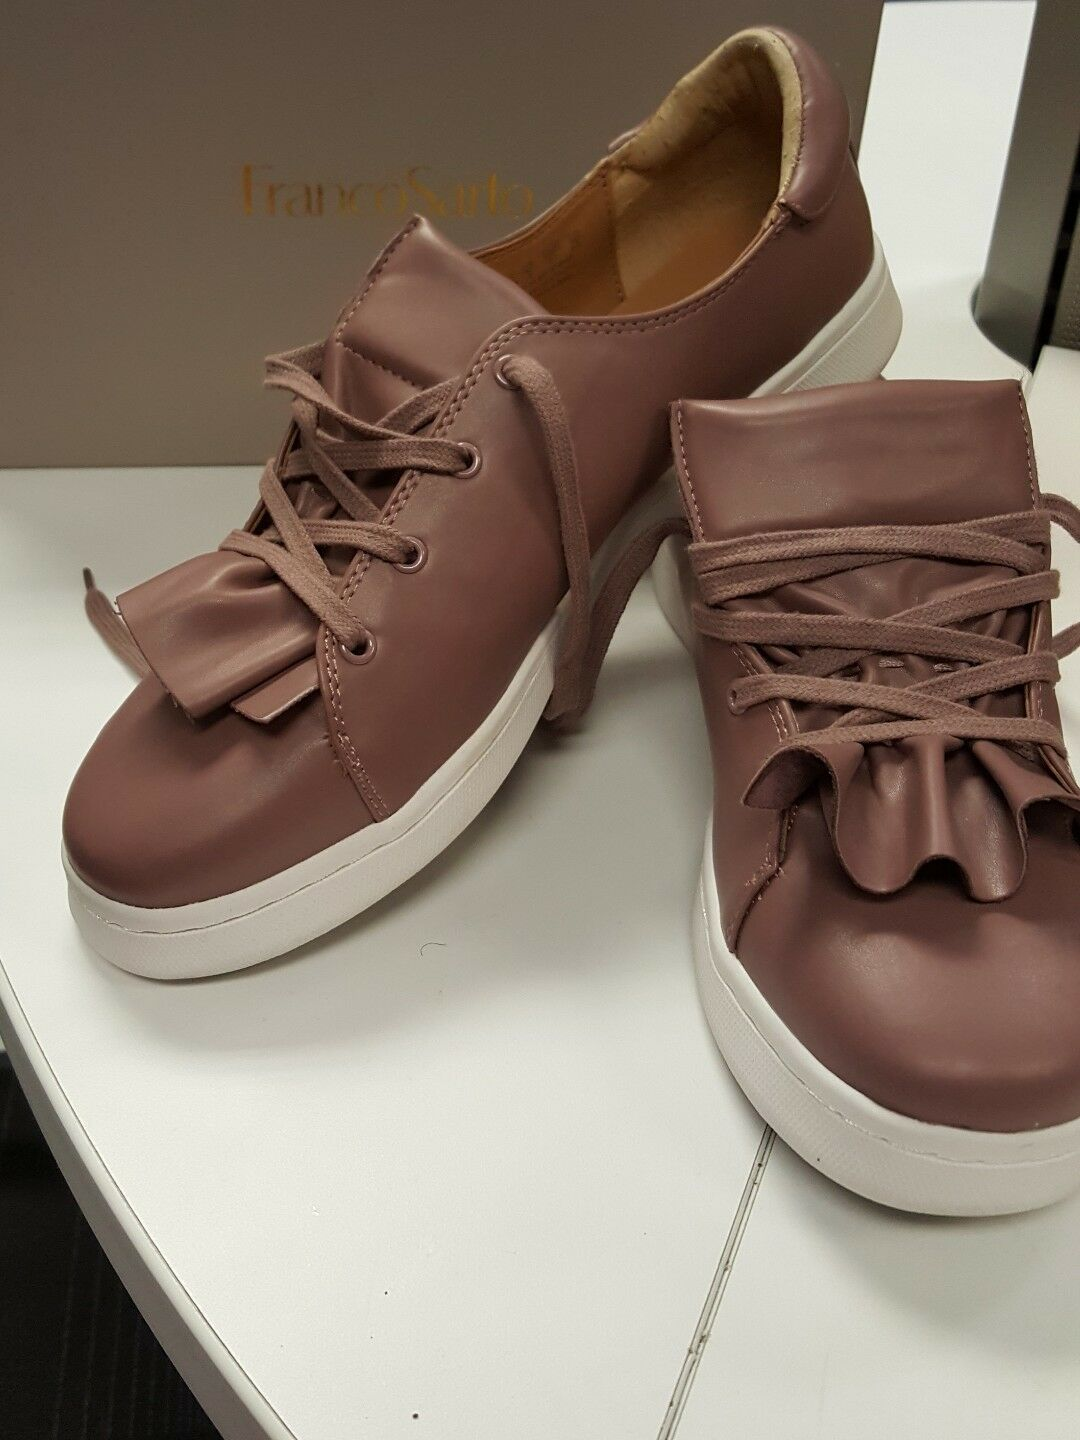 NIB Franco Sarto Stephanie Sneaker Lace-up Pleated Ruffle Mauve Size 11 M